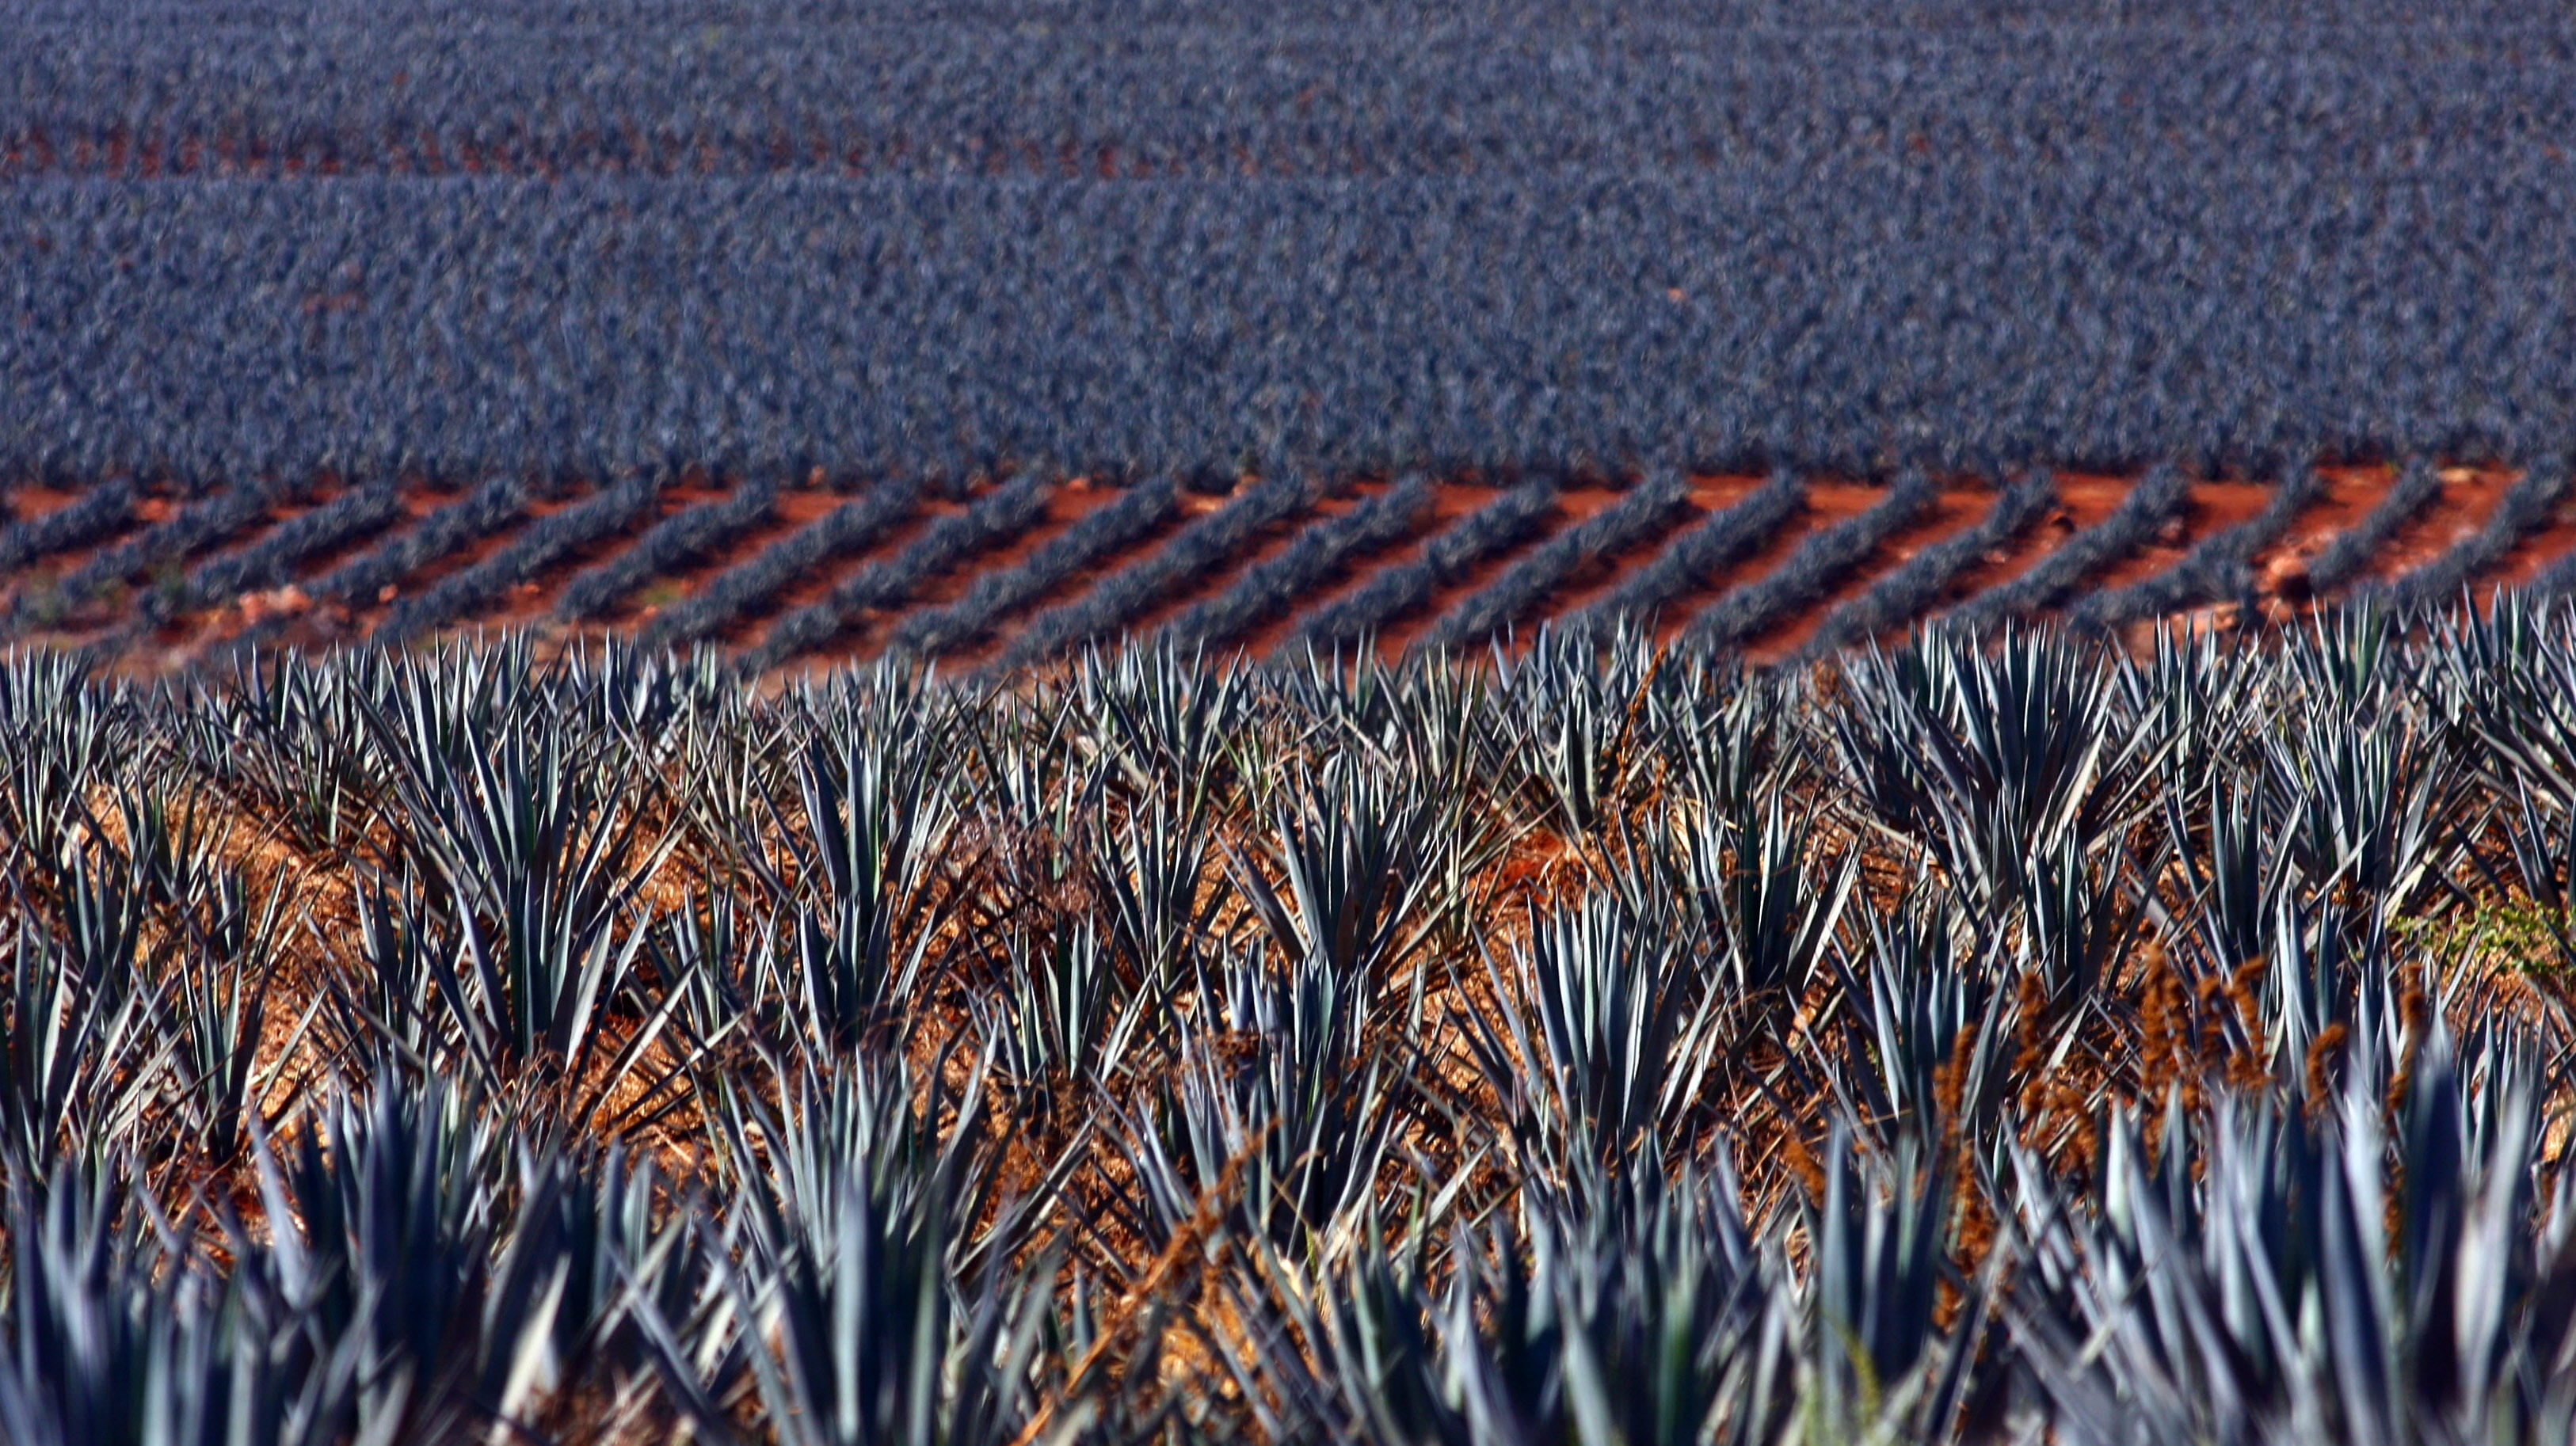 Blue agaves grow in a plantation for the production of tequila in Arandas, Jalisco state, Mexico, in December 2010. In the past 20 years, tequila has become fashionable all over the world, demonstrating that producers' international sales strategy has been a great success. Photo: Hector Guerrero/AFP/Getty Images